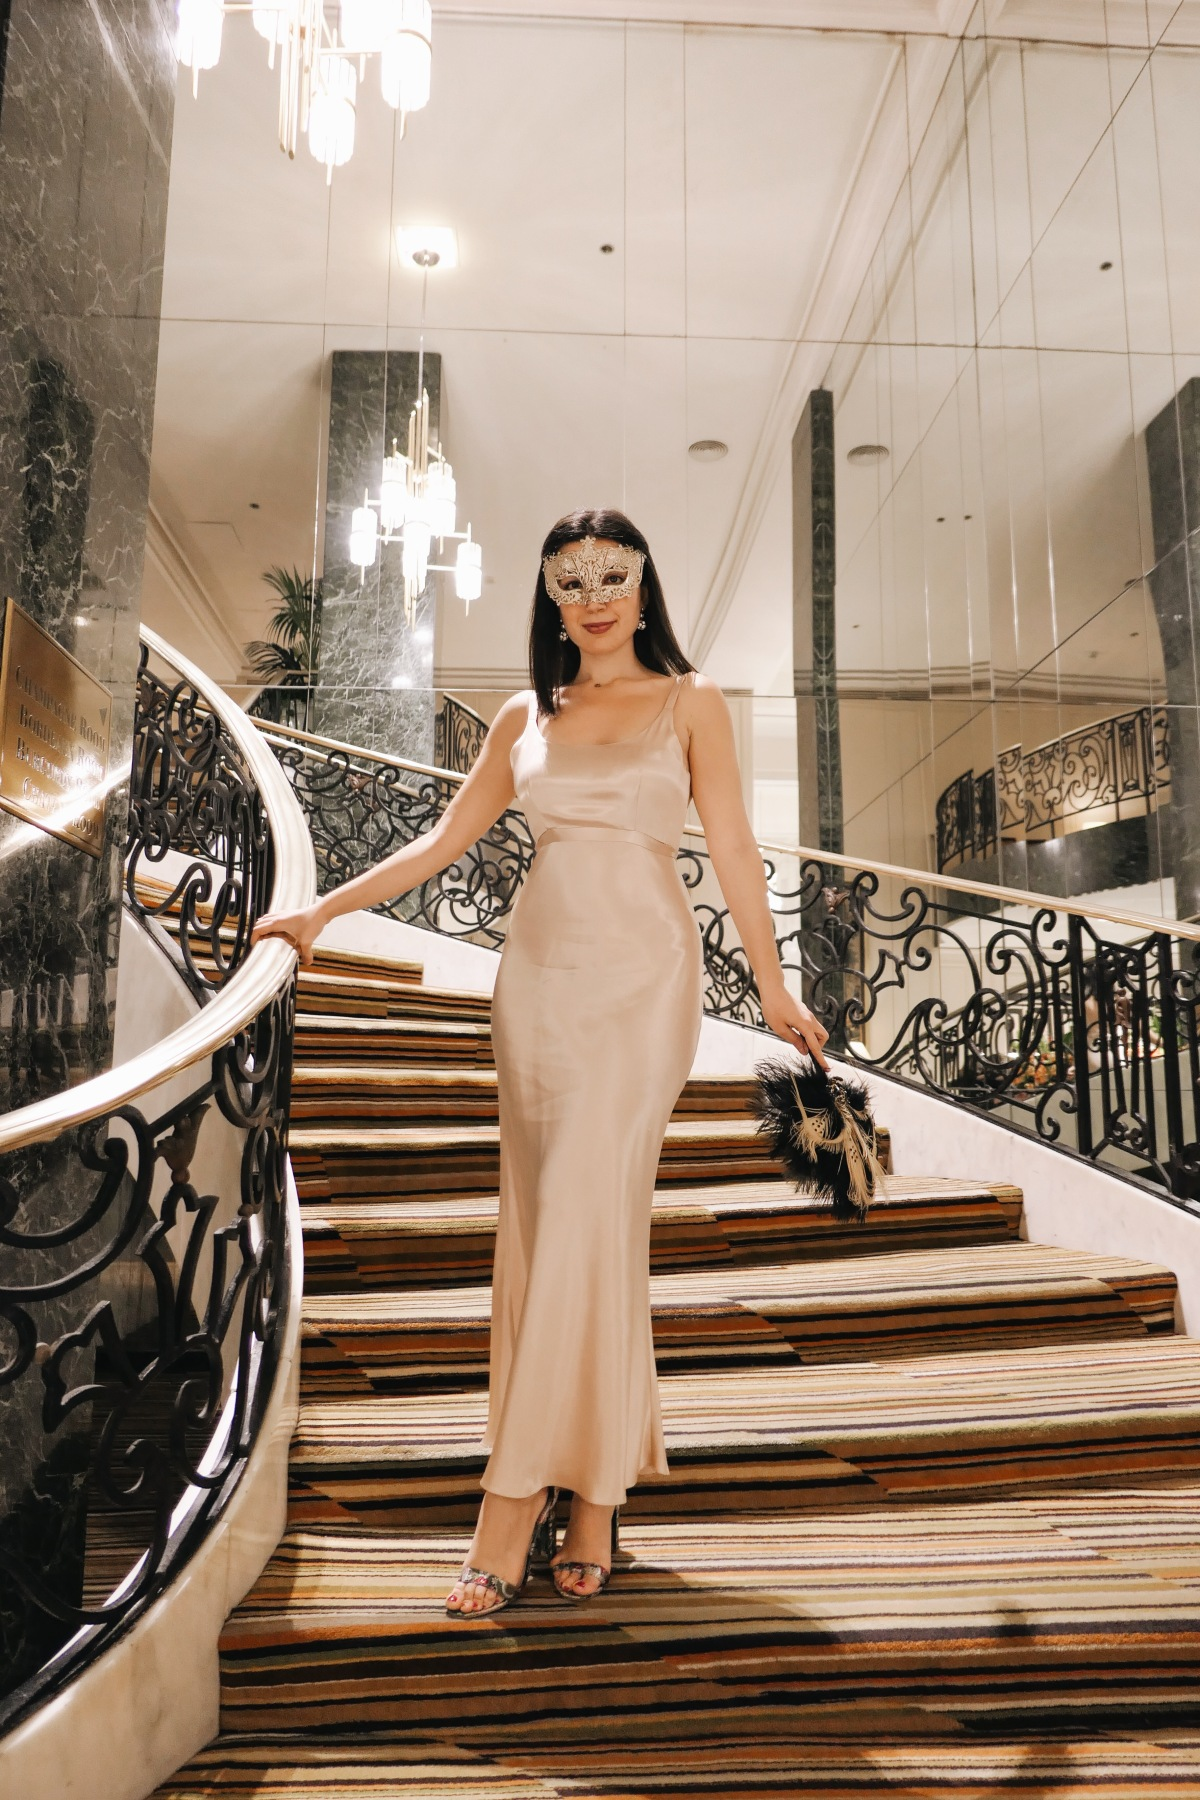 Beverly Hills, Downtown Beverly Hills, evening gown, vintage, masquerade, vintage fashion, vintage dress, satin dress, 1940s dress, Steve Madden, luxury fashion, fashion blogger, LA blogger, lifestyle blogger, lookbook, outfit of the day, look of the day, what I wore, open-toed heels, shawl